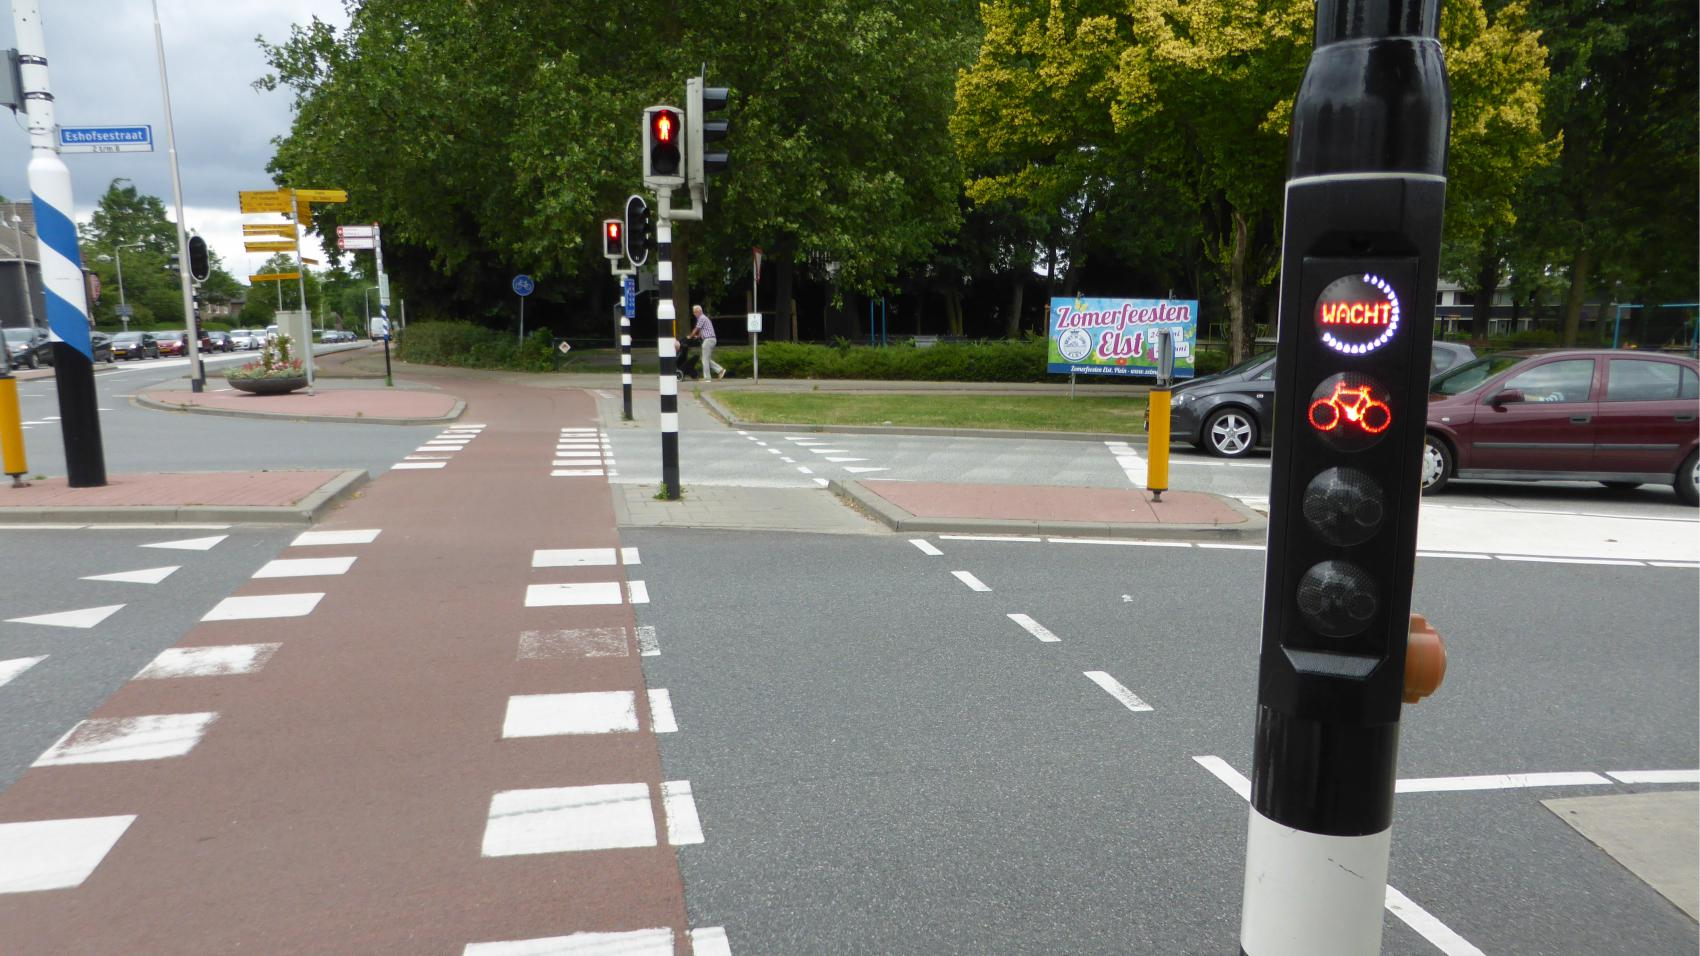 The alternative route through Elst also meets Dutch high standards of quality, but unlike the cycle highway involves some waiting on traffic lights